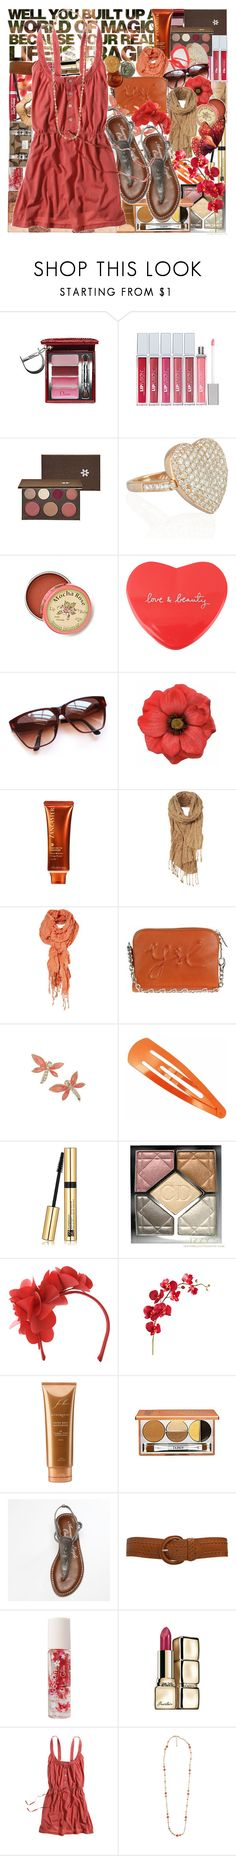 """""""when im with you"""" by brookalinaballerina ❤ liked on Polyvore featuring Christian Dior, FusionBeauty, philosophy, Anita Ko, Anthropologie, Forever 21, Clips, Lancaster, Yves Saint Laurent and Miss Selfridge"""